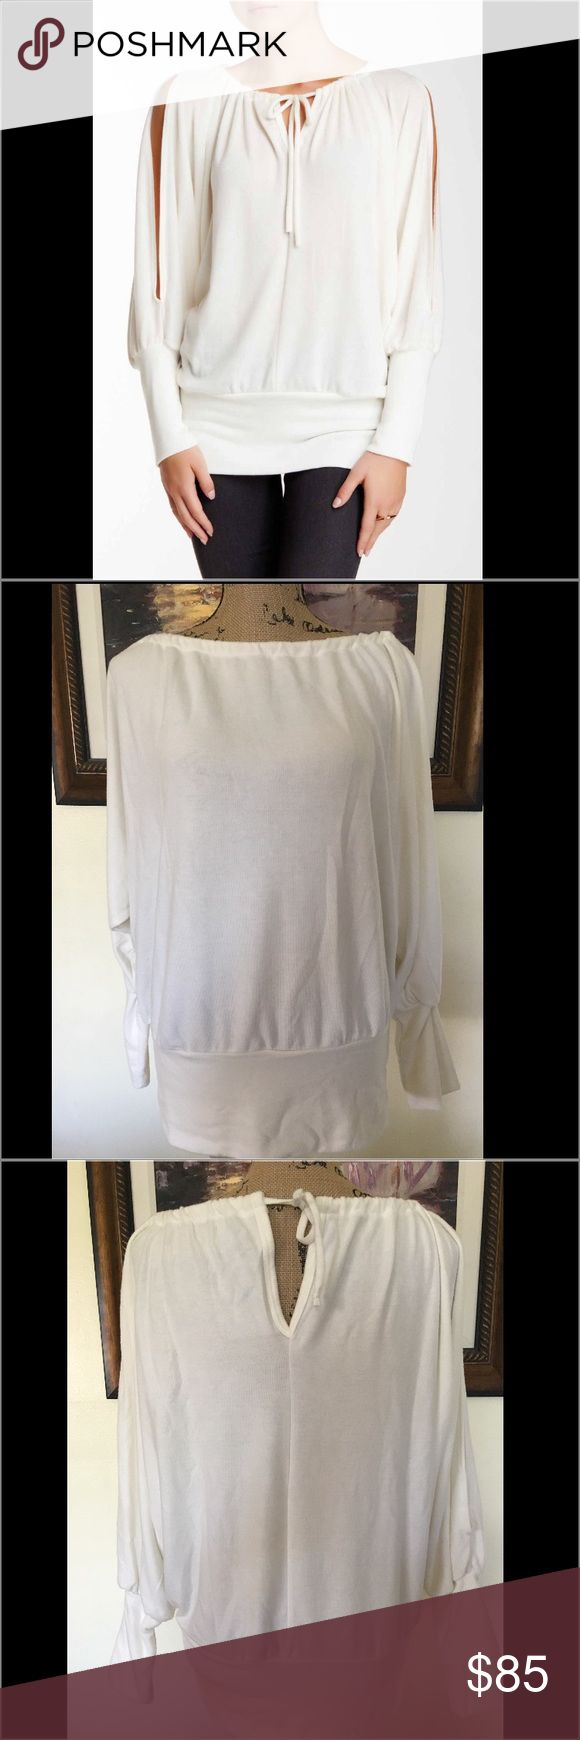 Go Couture Cold Shoulder Cream Sweater Go Couture Cold Shoulder Cream Sweater.  New without tags.   Soft, Fashionable and comfortable. Go Couture Sweaters